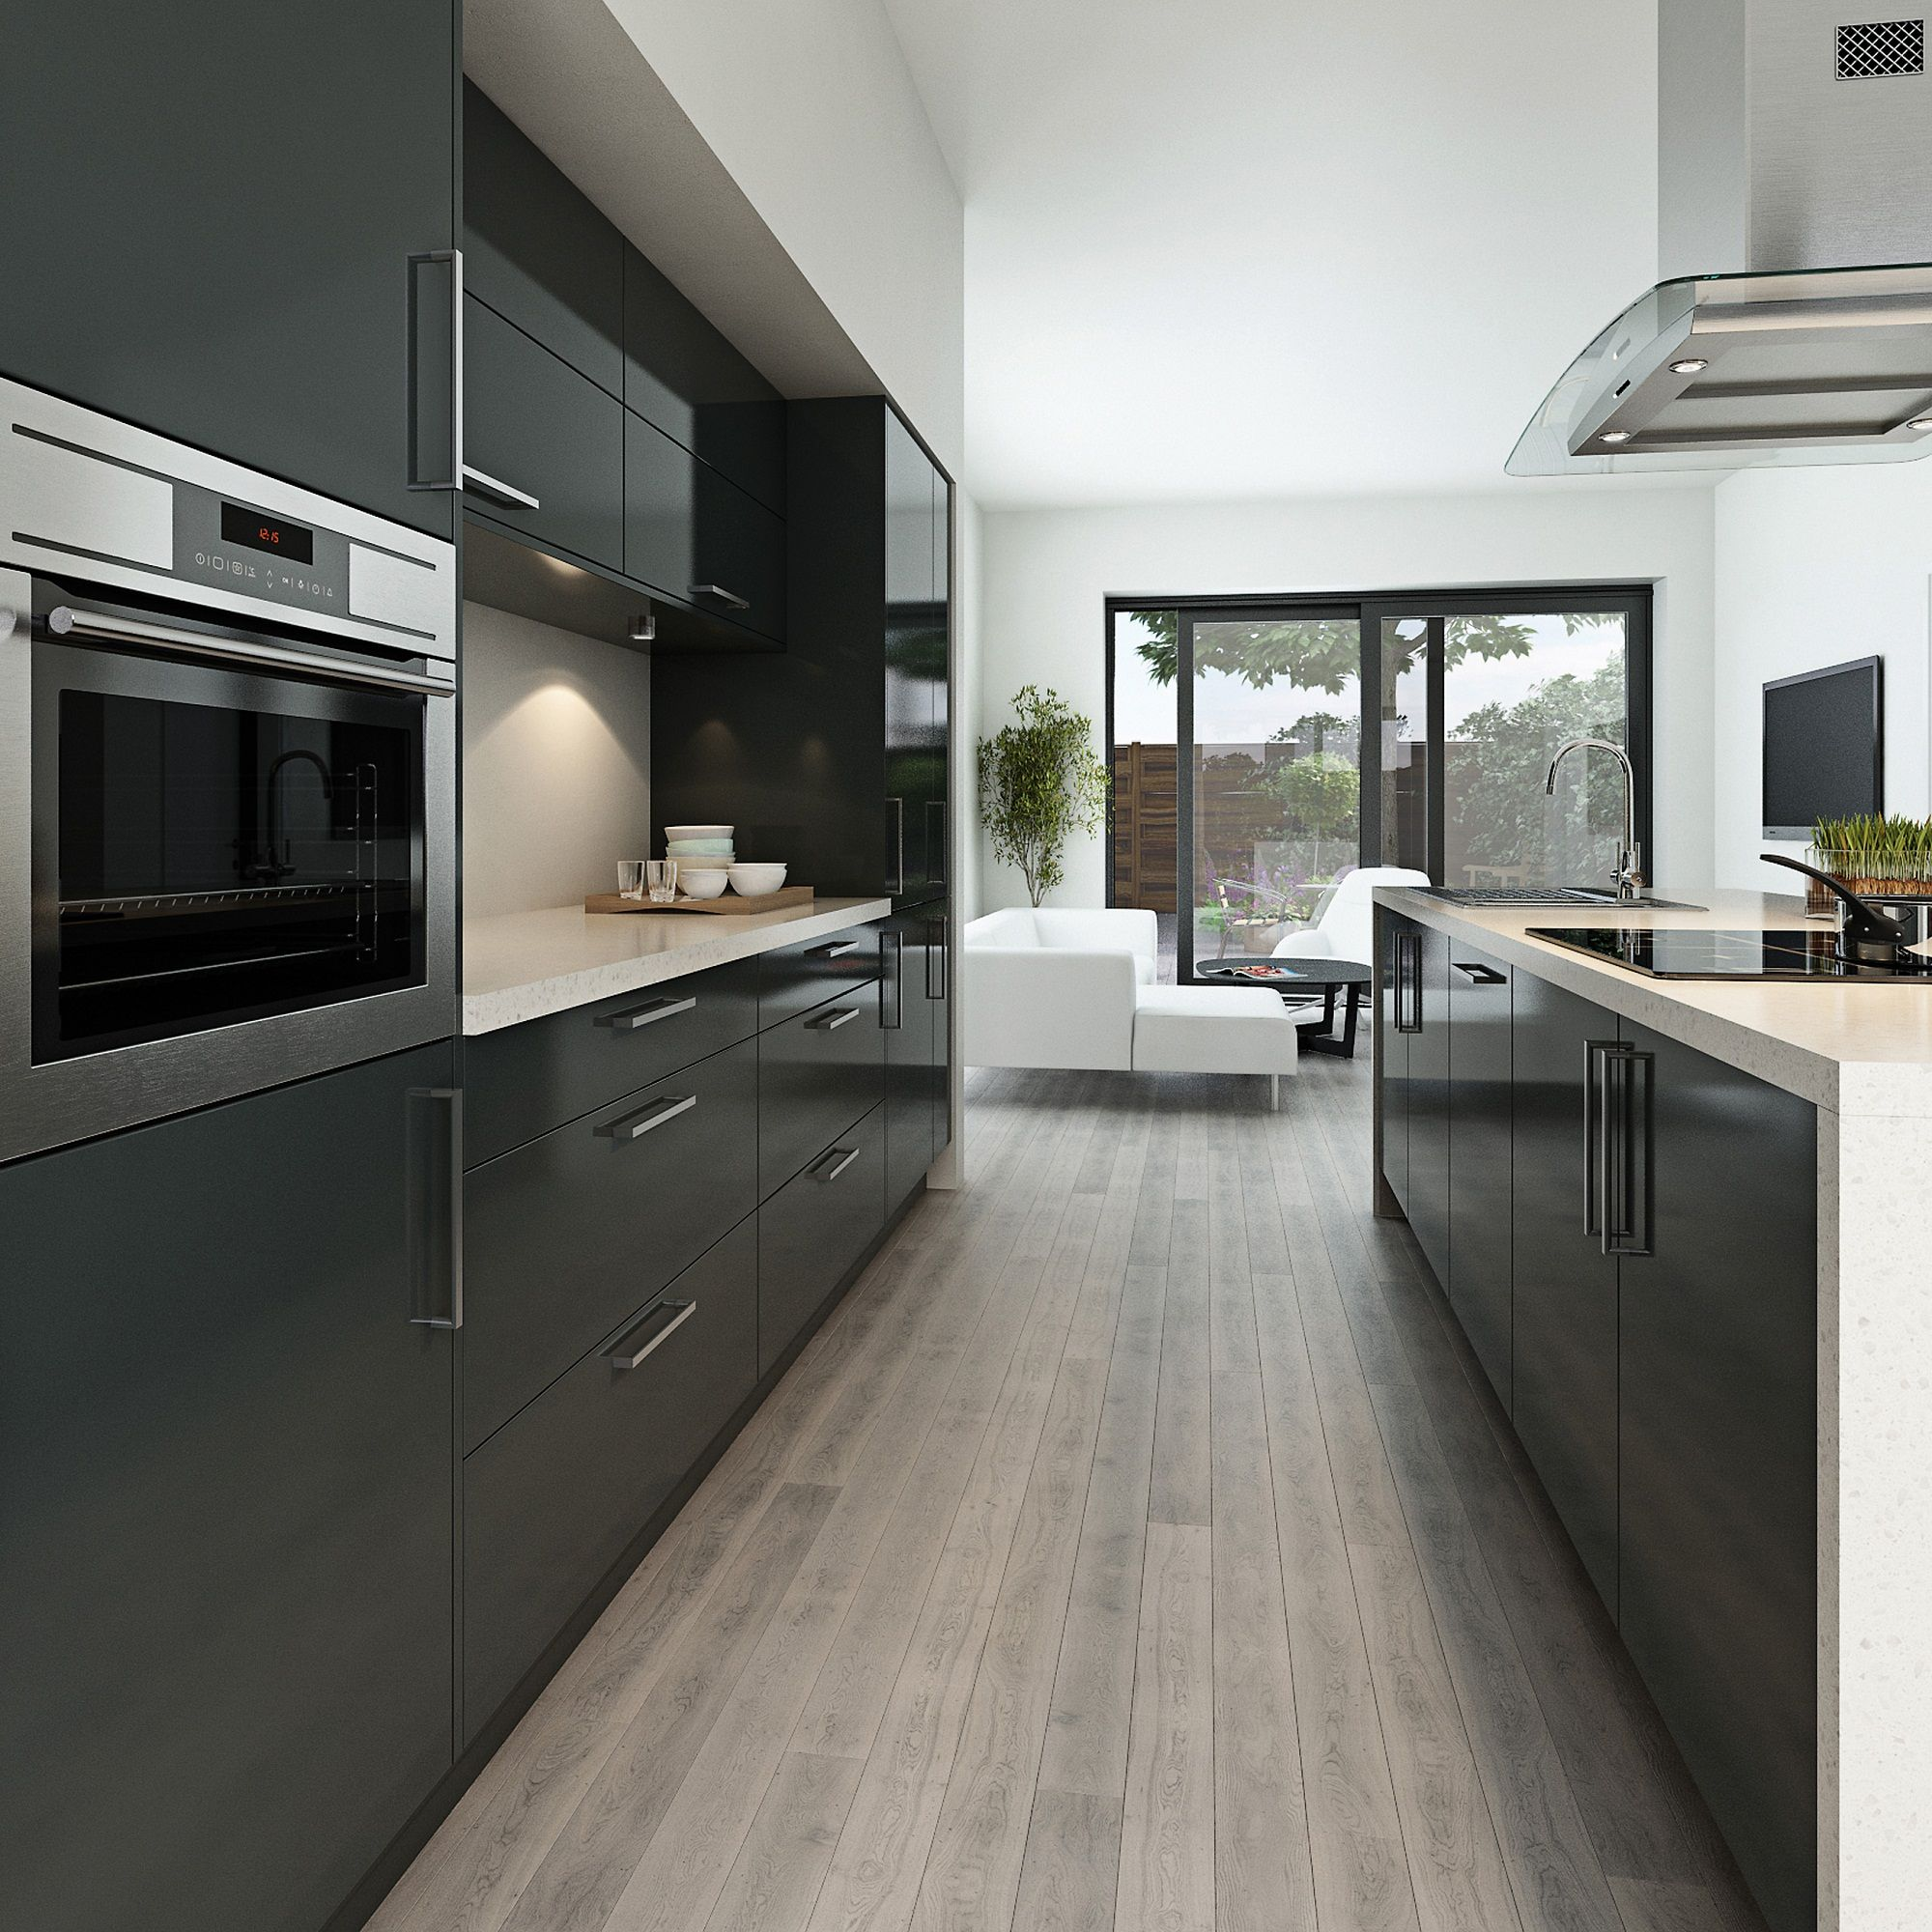 pin by connie kay design on kitchen modern grey kitchen contemporary grey kitchen kitchen on kitchen cabinets modern contemporary id=33334